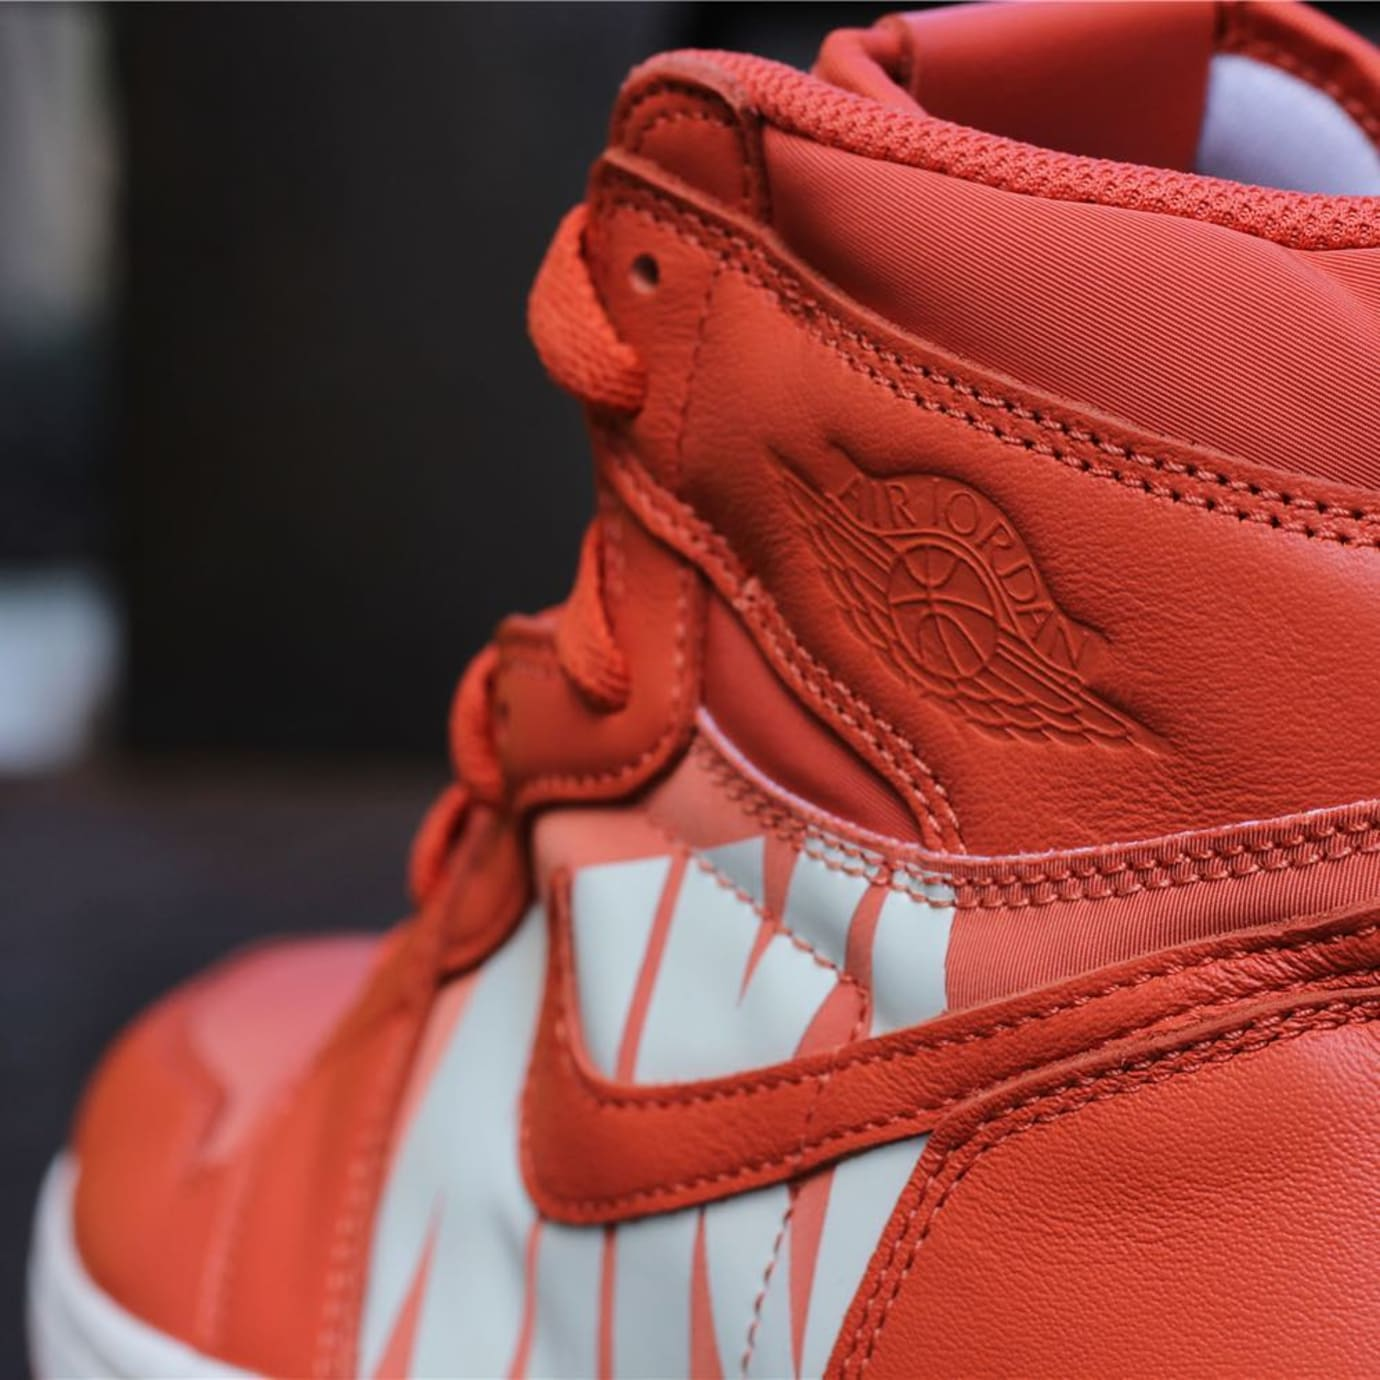 Air Jordan 1 Orange Nike Swoosh Release Date Collar